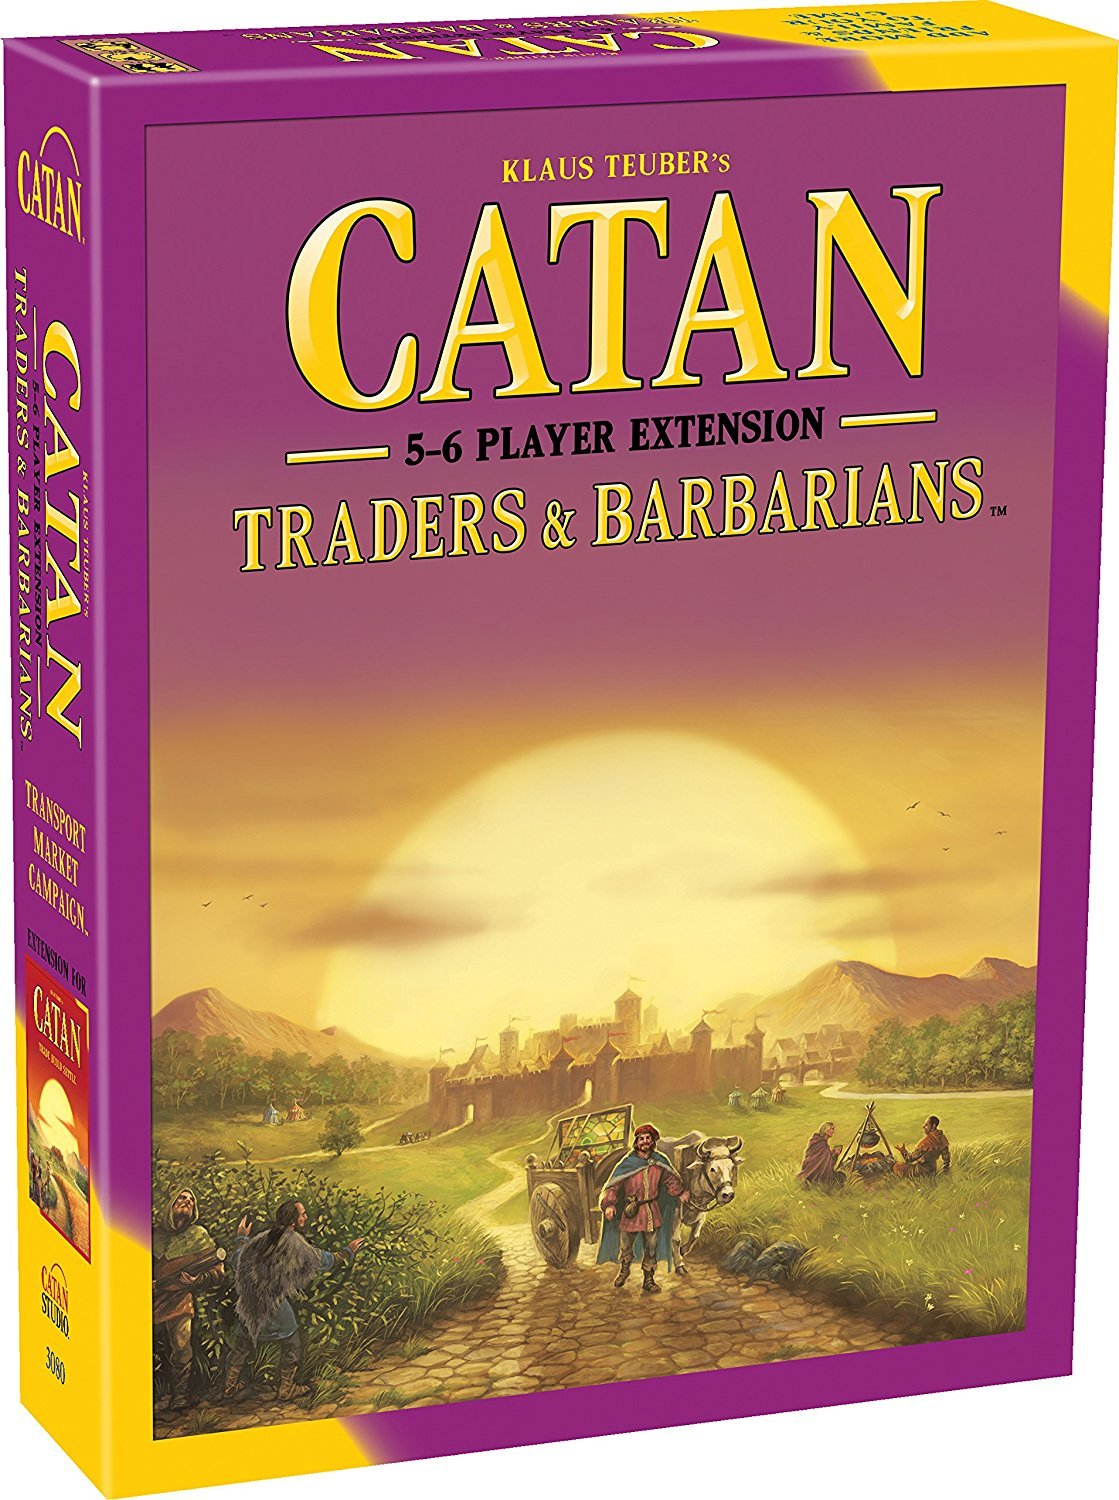 Catan: Traders and Barbarians 5/6 Player Extension pack image